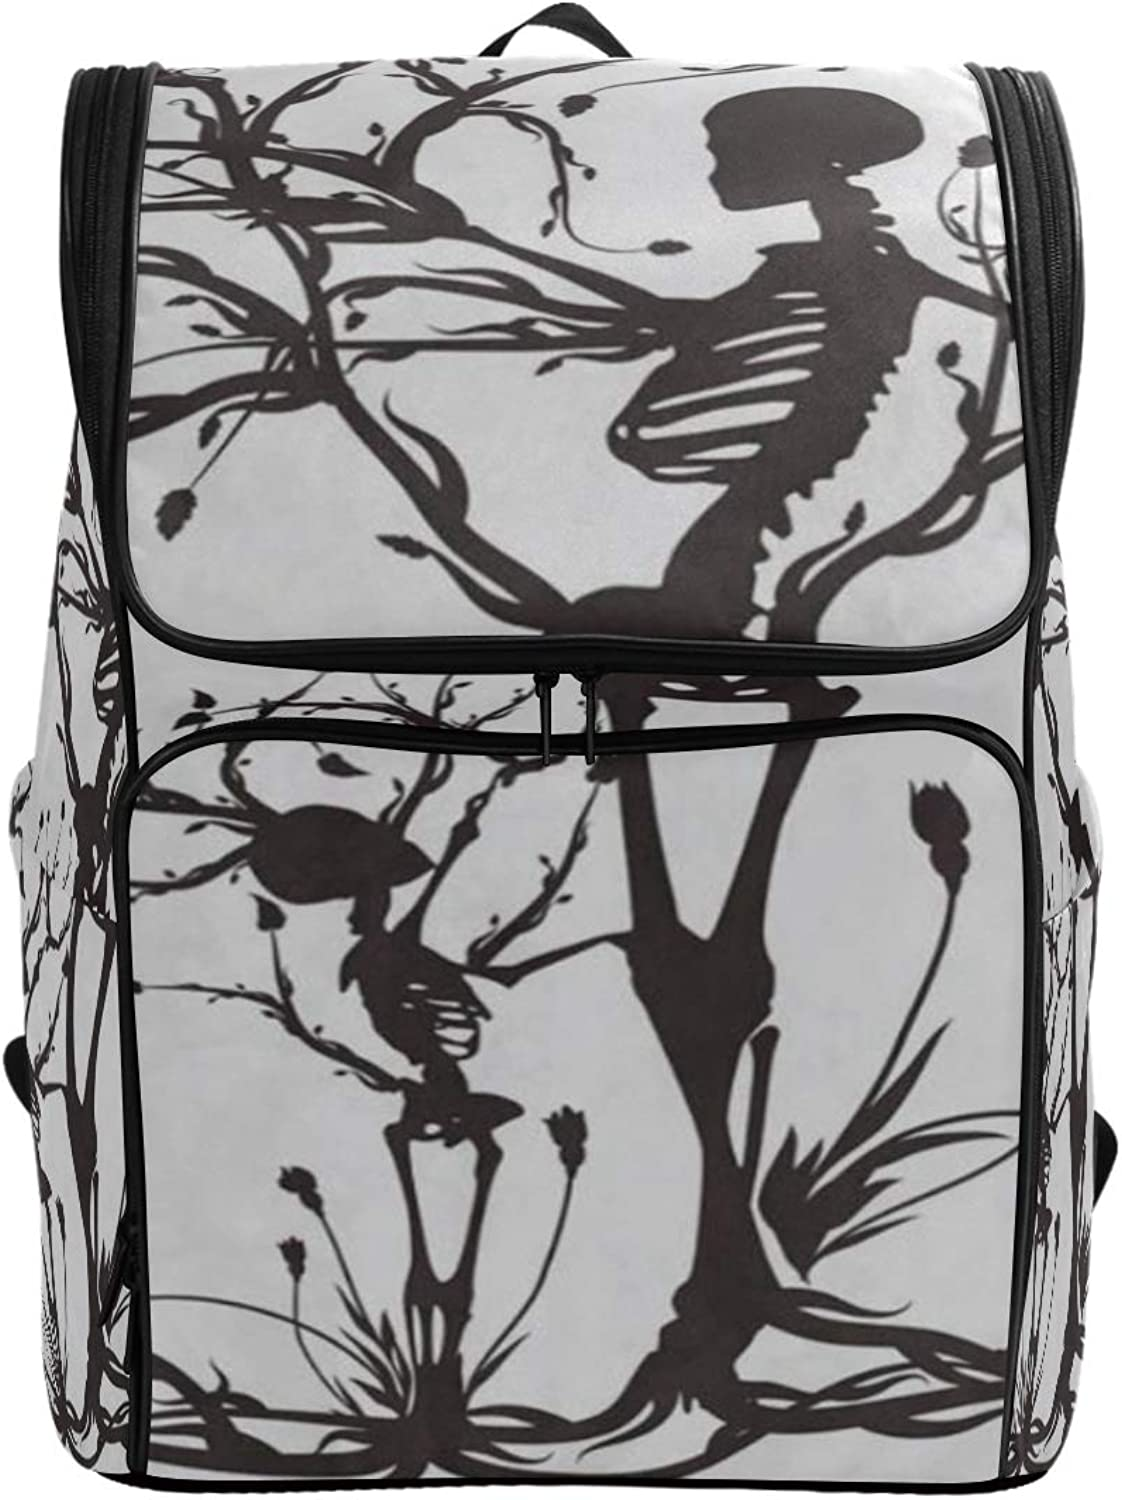 d4eb961e25ca Travel Sugar Tree Floral College Backpack for Men Big Hunting ...